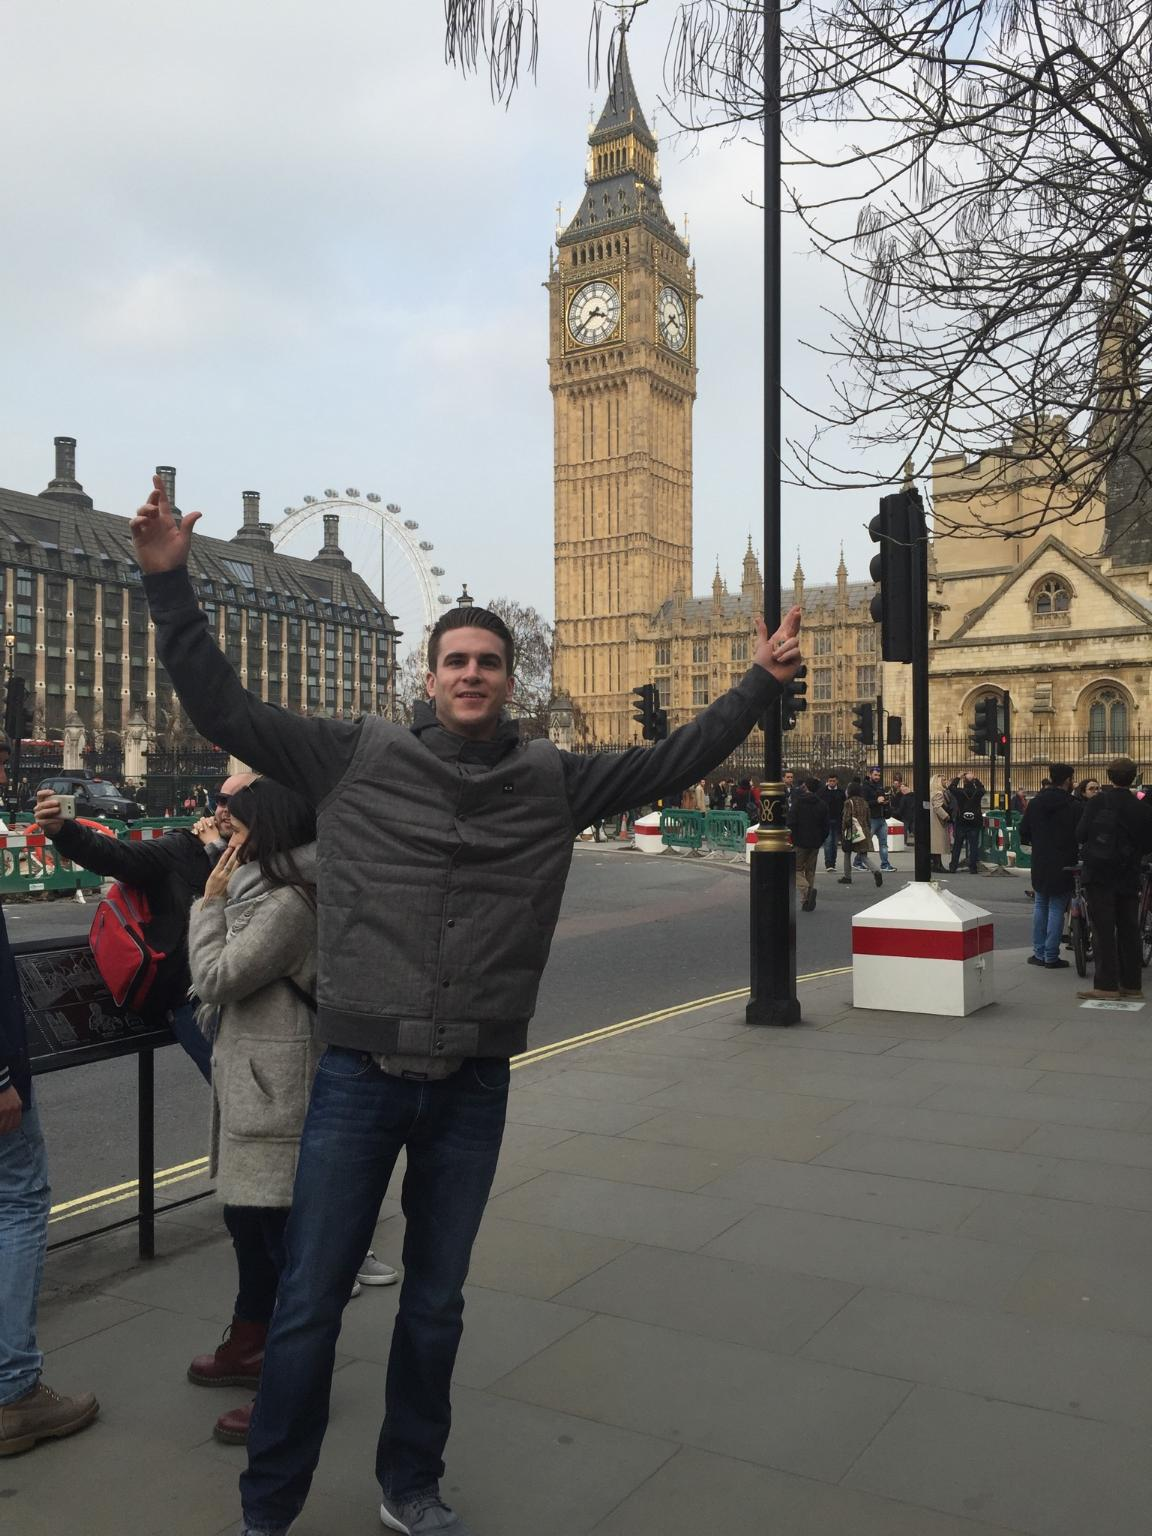 Sean Wilson in front of the Big Ben